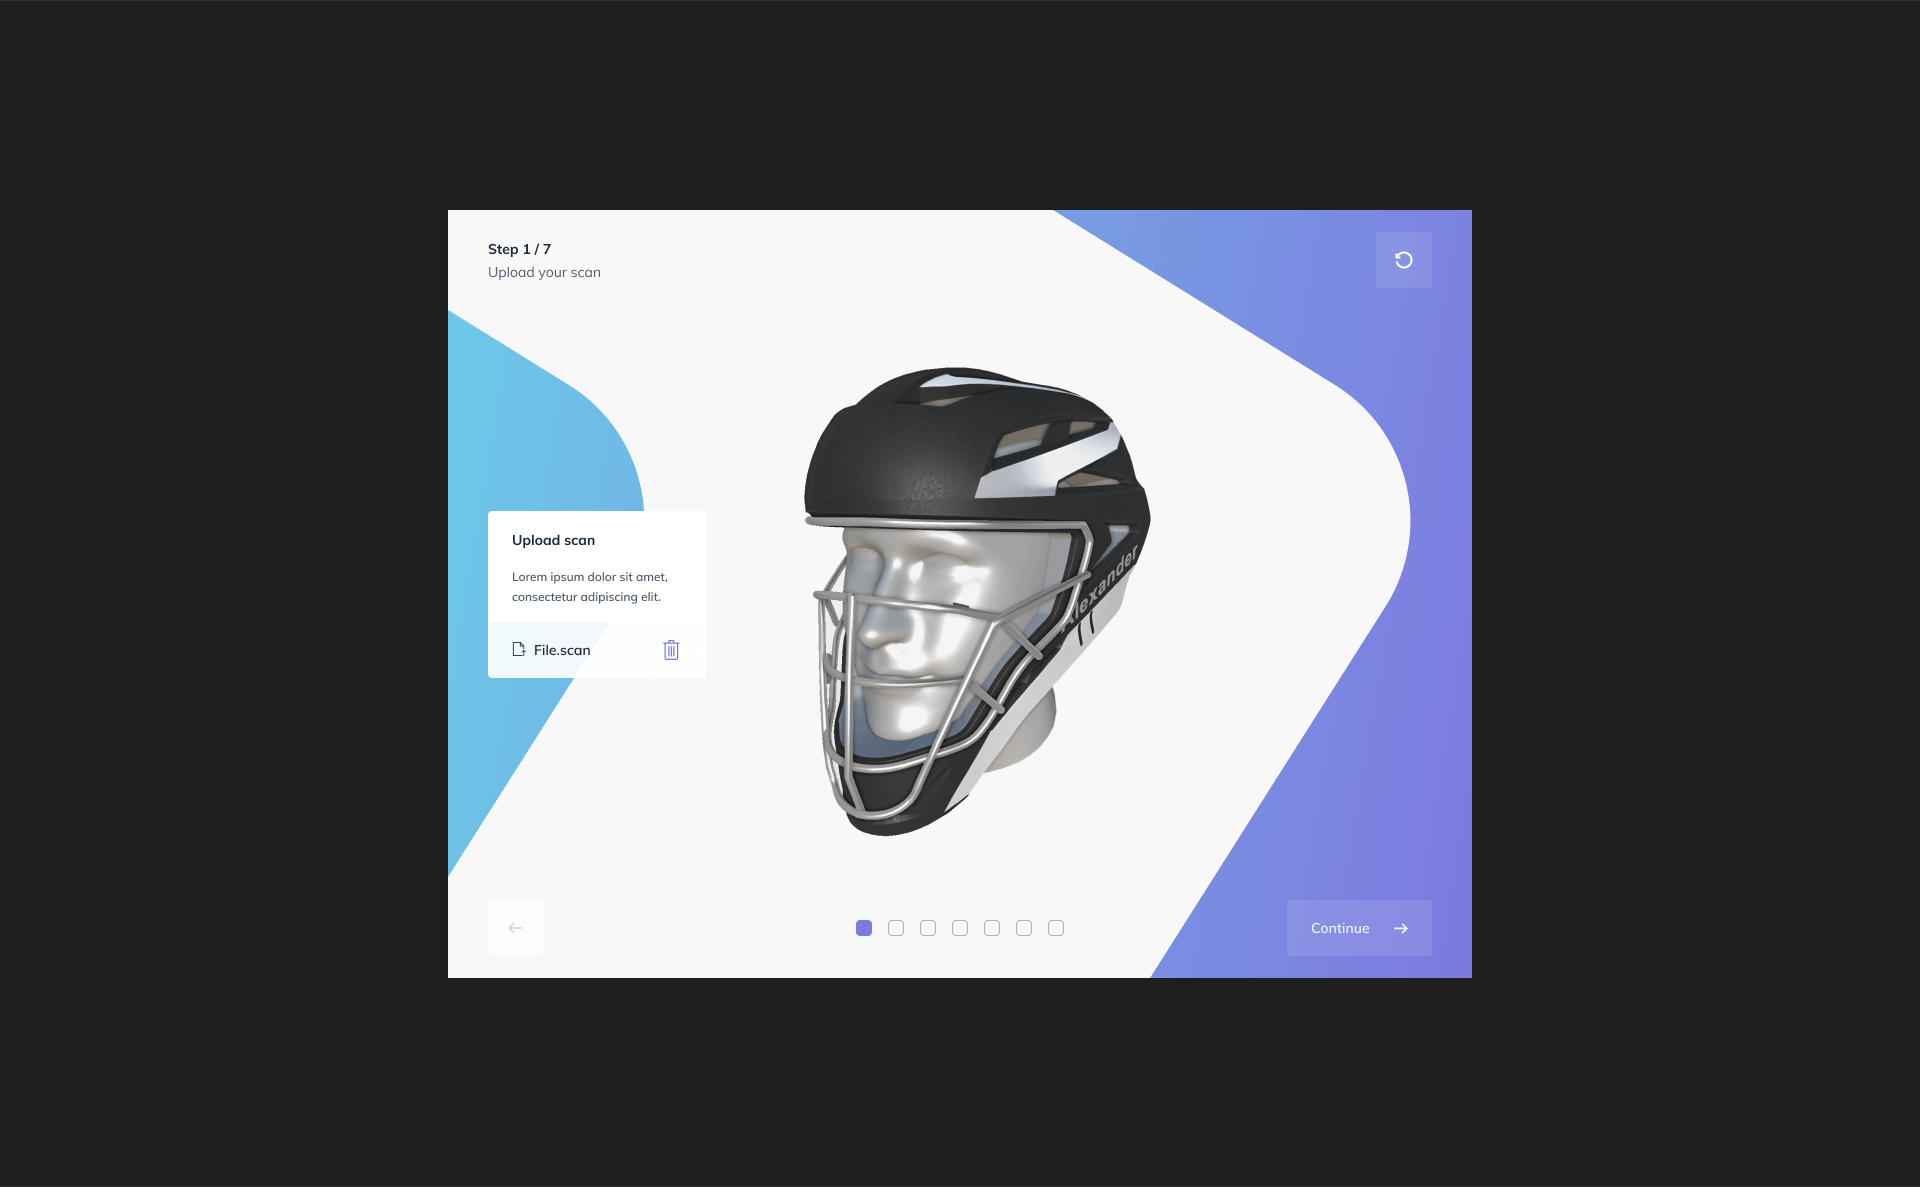 Twikit Sports Helmet upload screen